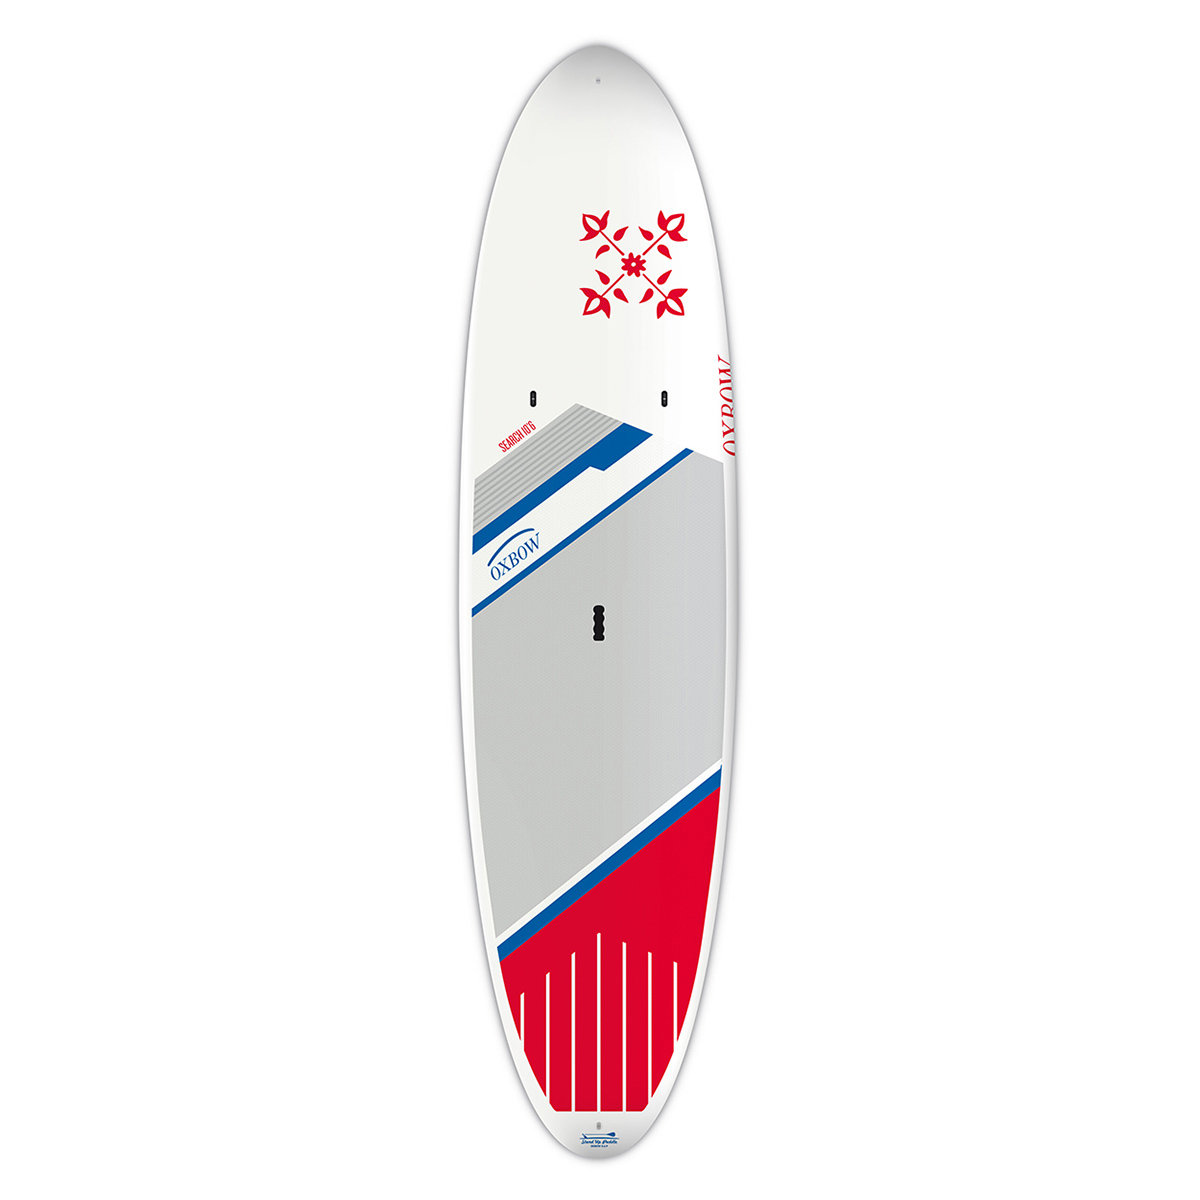 Oxbow-ACE-TEC-SEARCH-106--SUP-wFiberglass-Paddle---SALE-PRICE-899.95_119439A.jpg